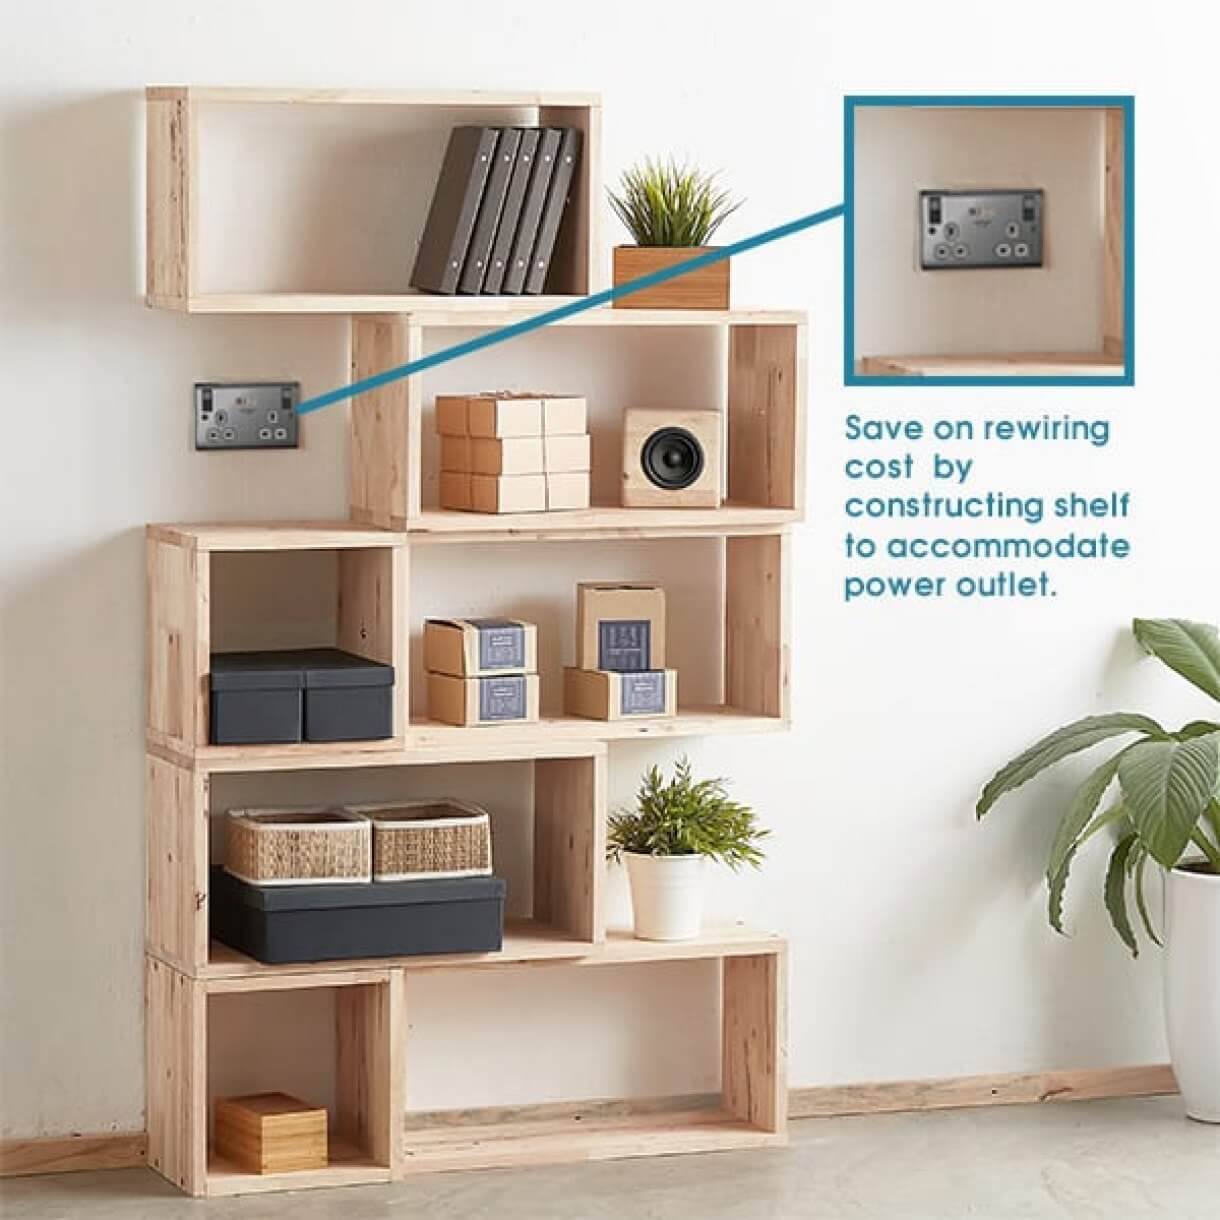 Customisable Shelf that Accommodates Power Outlet - Comfort Furniture